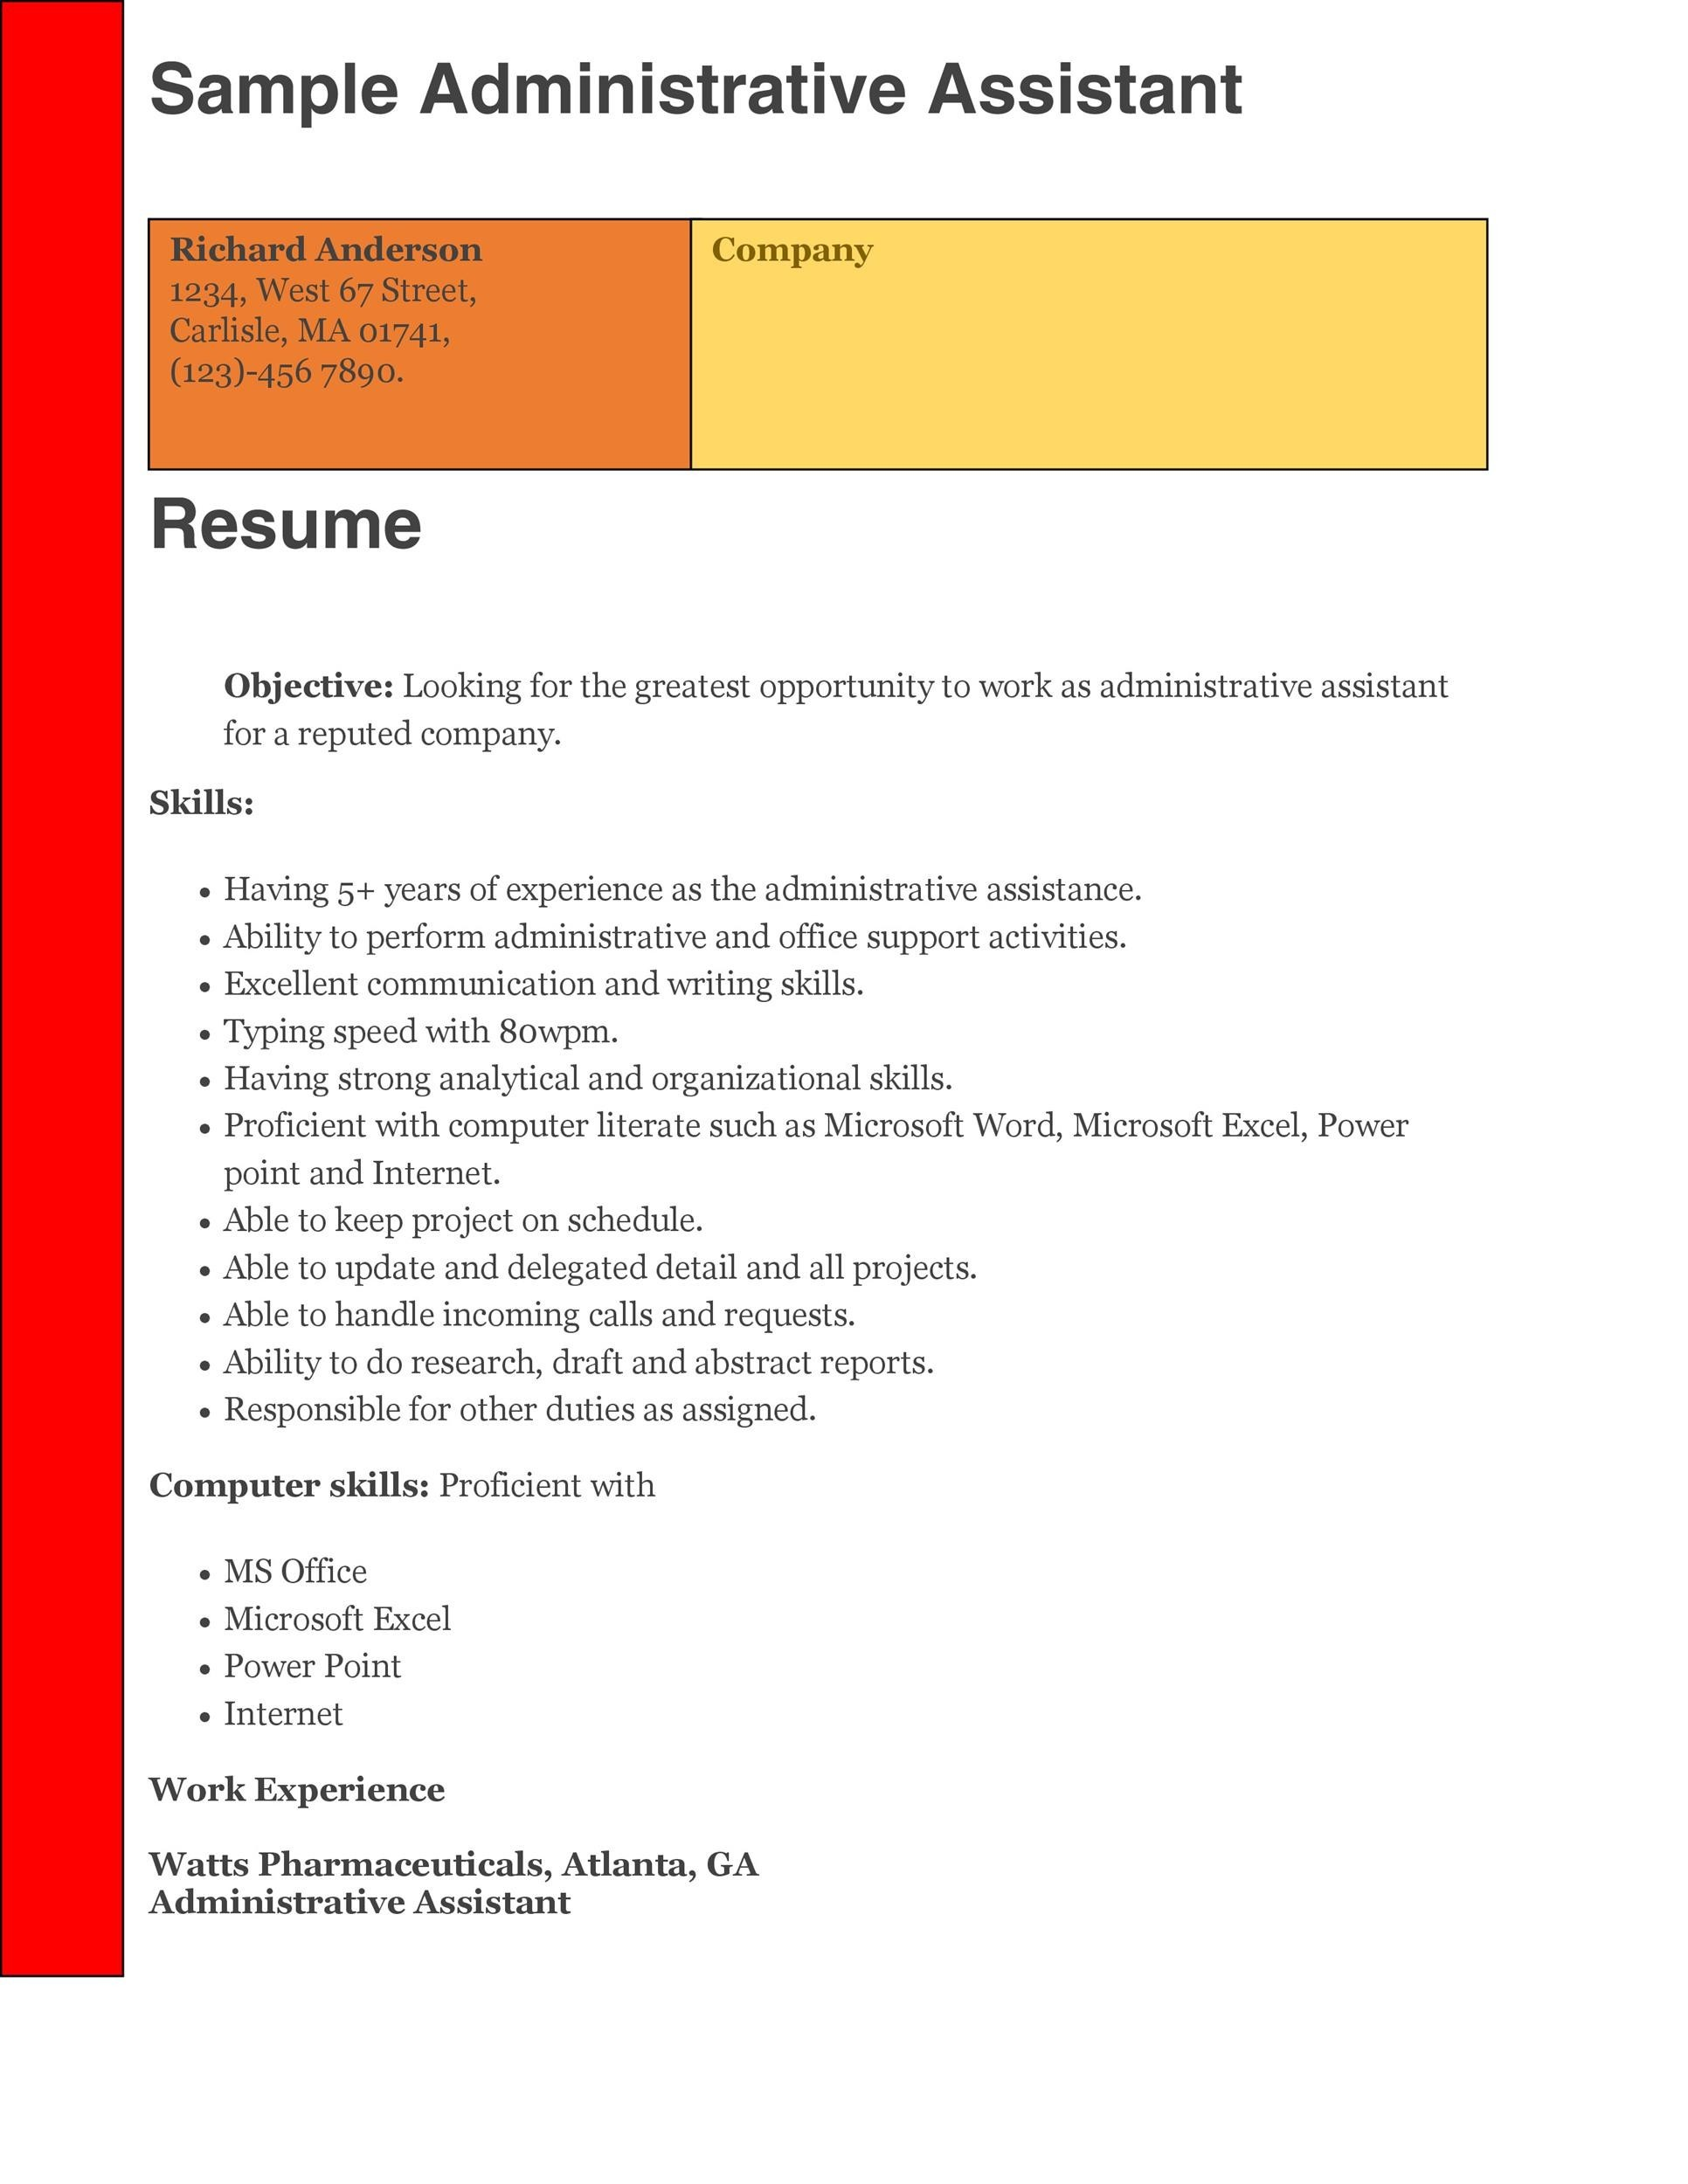 Printable Administrative Assistant Resume Template 10